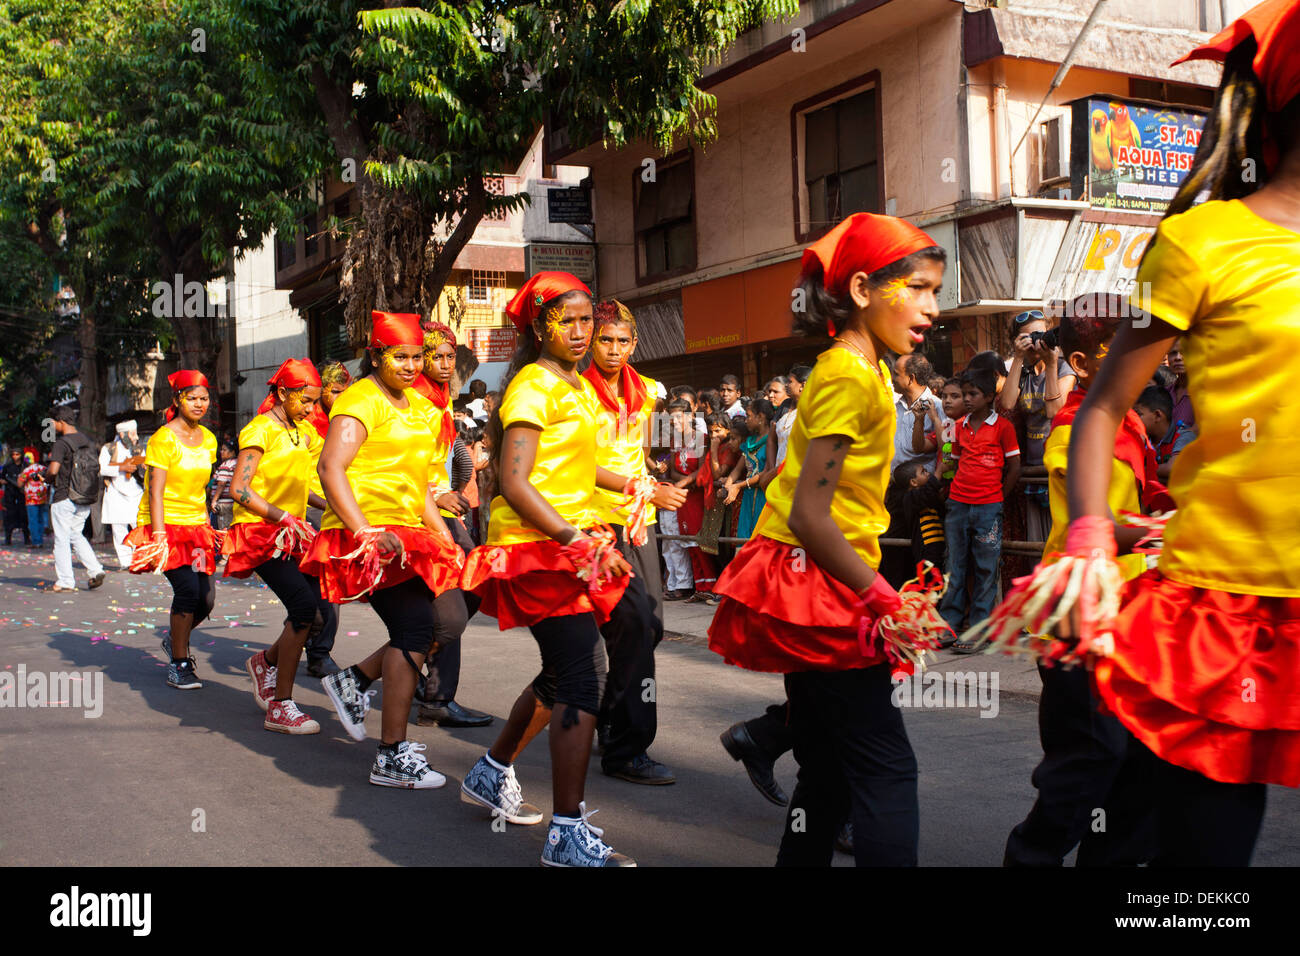 Girls performing during a procession in a carnival, Goa Carnivals, Goa, India - Stock Image